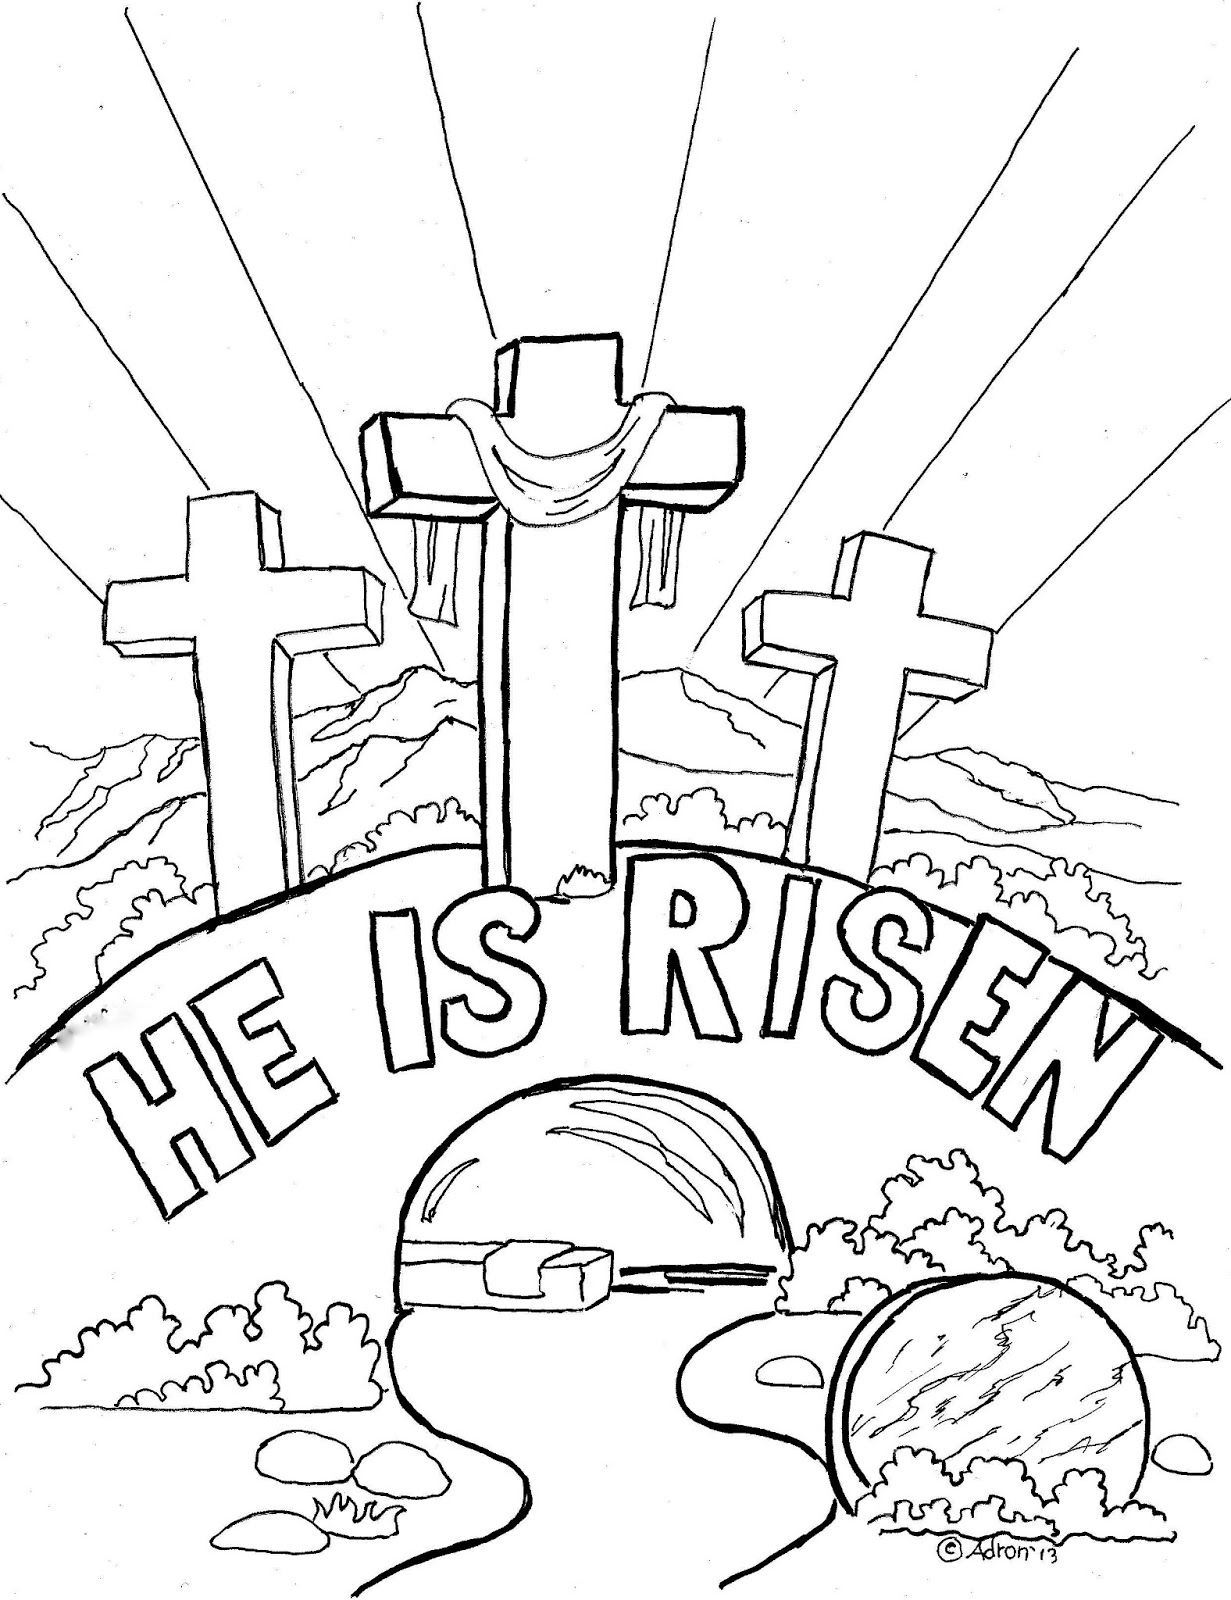 church easter coloring pages easter coloring pages for kids easter coloring pages religious easter coloring pages free and fresh coloring pictures